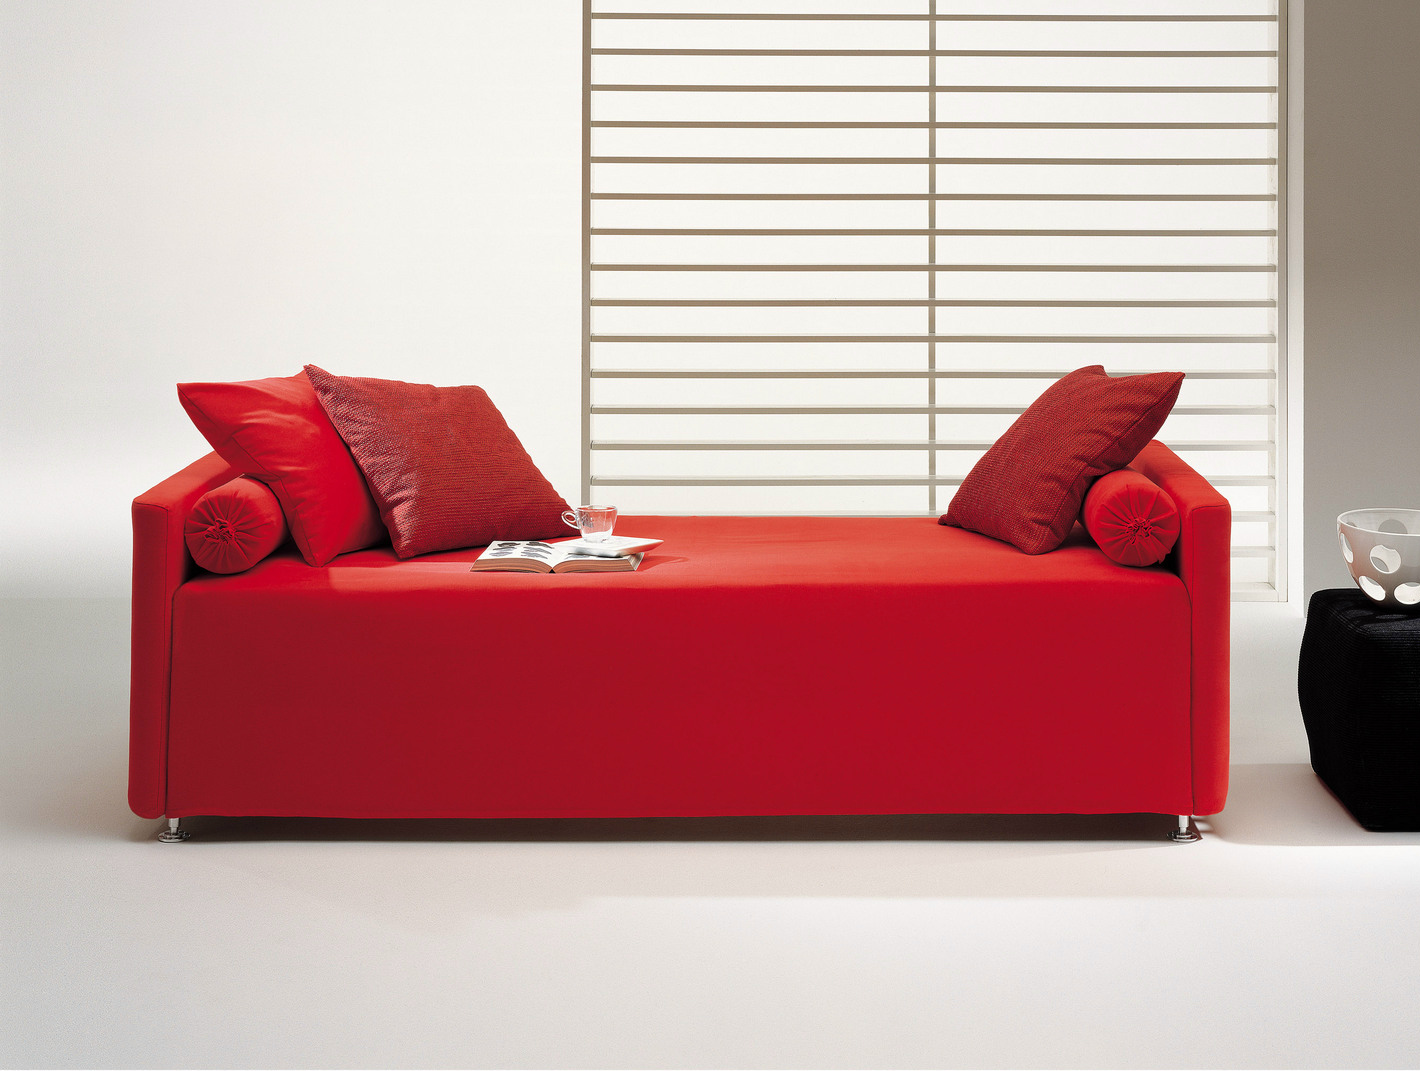 CONVERTIBLE SOFA BED JUNIOR 2 BY BODEMA DESIGN STUDIO RES : prodotti 84806 relc7e2f89dd6b947f785ffd453fcf9a790 from archiproducts.com size 1420 x 1071 jpeg 513kB